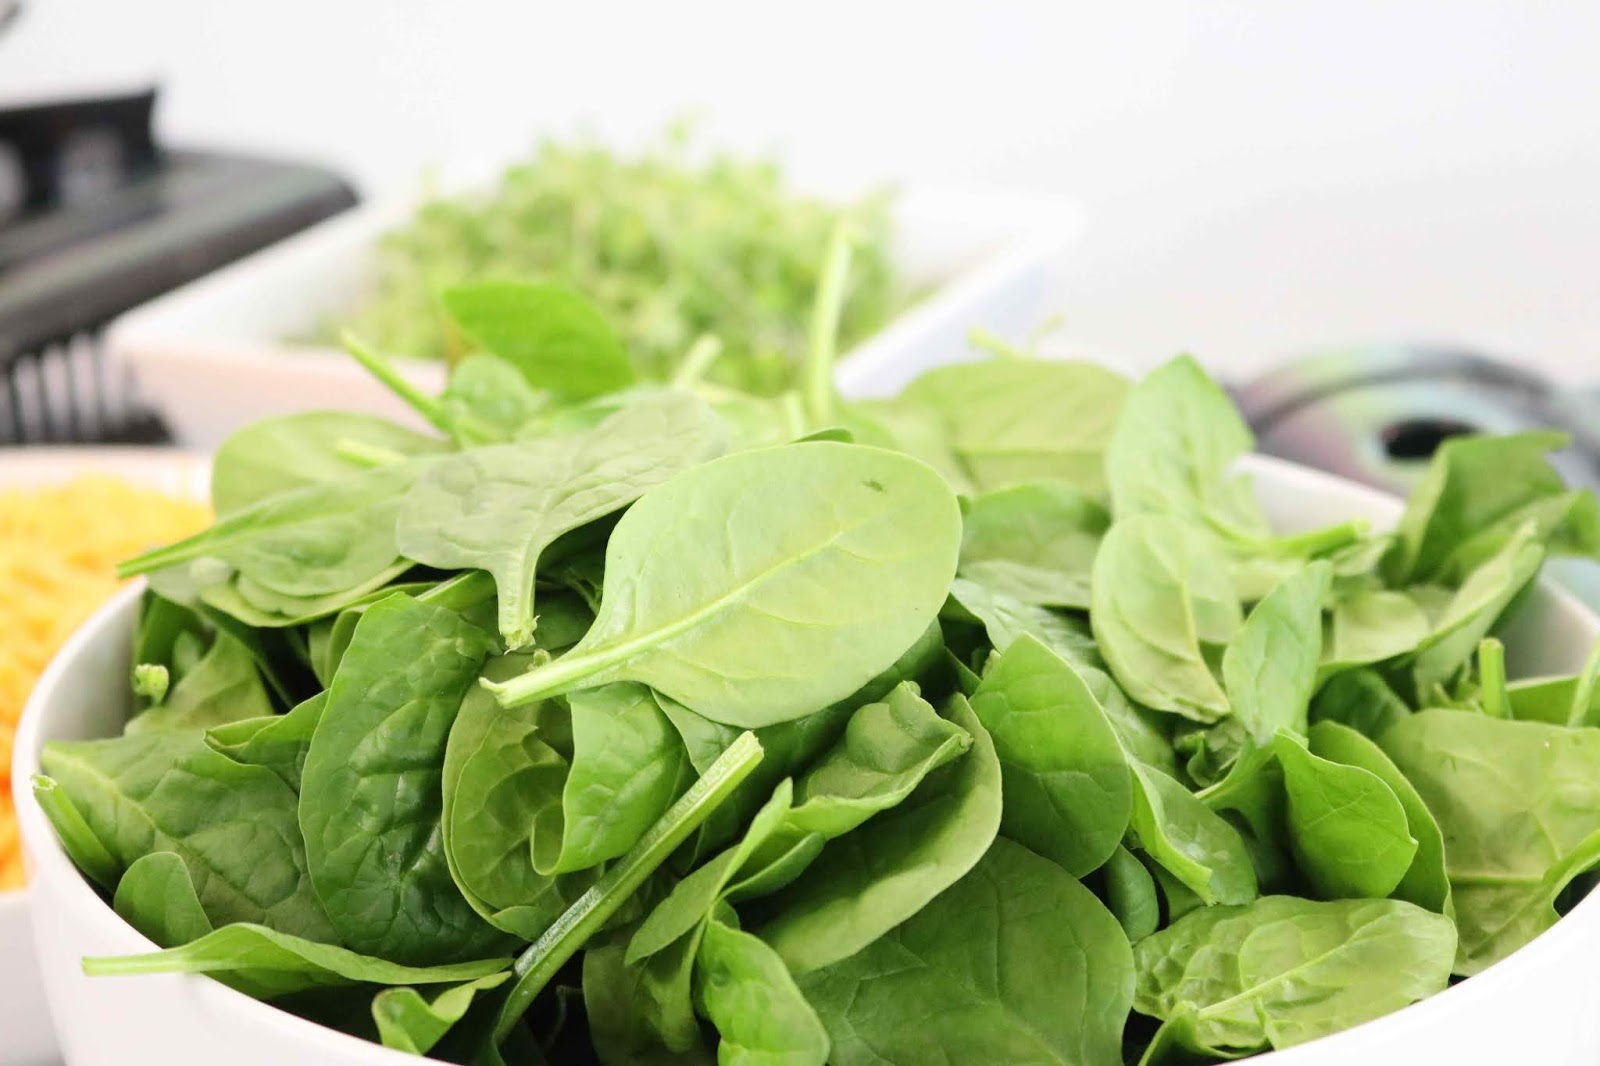 Best Foods to Control Diabetes - Both Type 1 and Type 2 - Leafy Vegetables